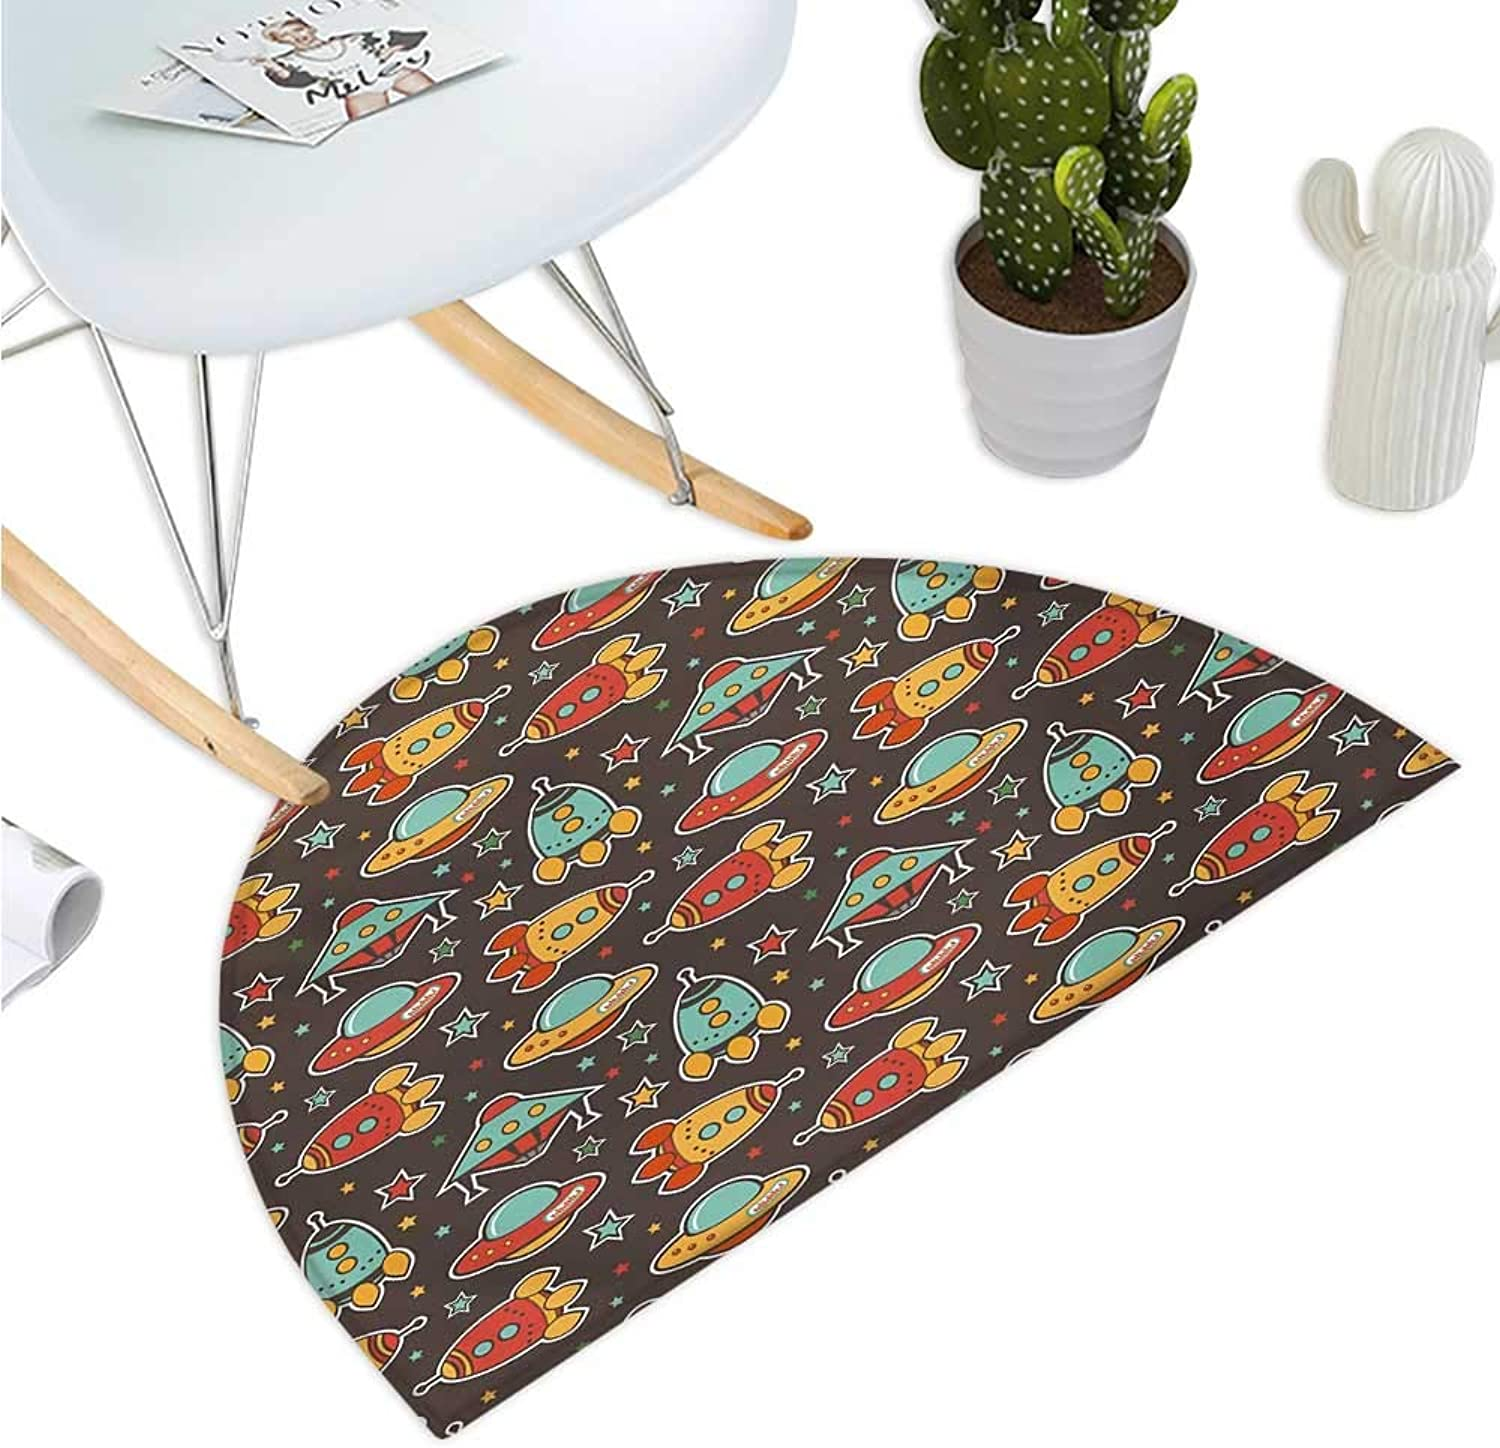 Space Semicircular Cushion Outer Space Elements Rockets UFO and Crafts Stars Heavenly Bodies Funny Alien Cartoon Entry Door Mat H 51.1  xD 76.7  Multicolor